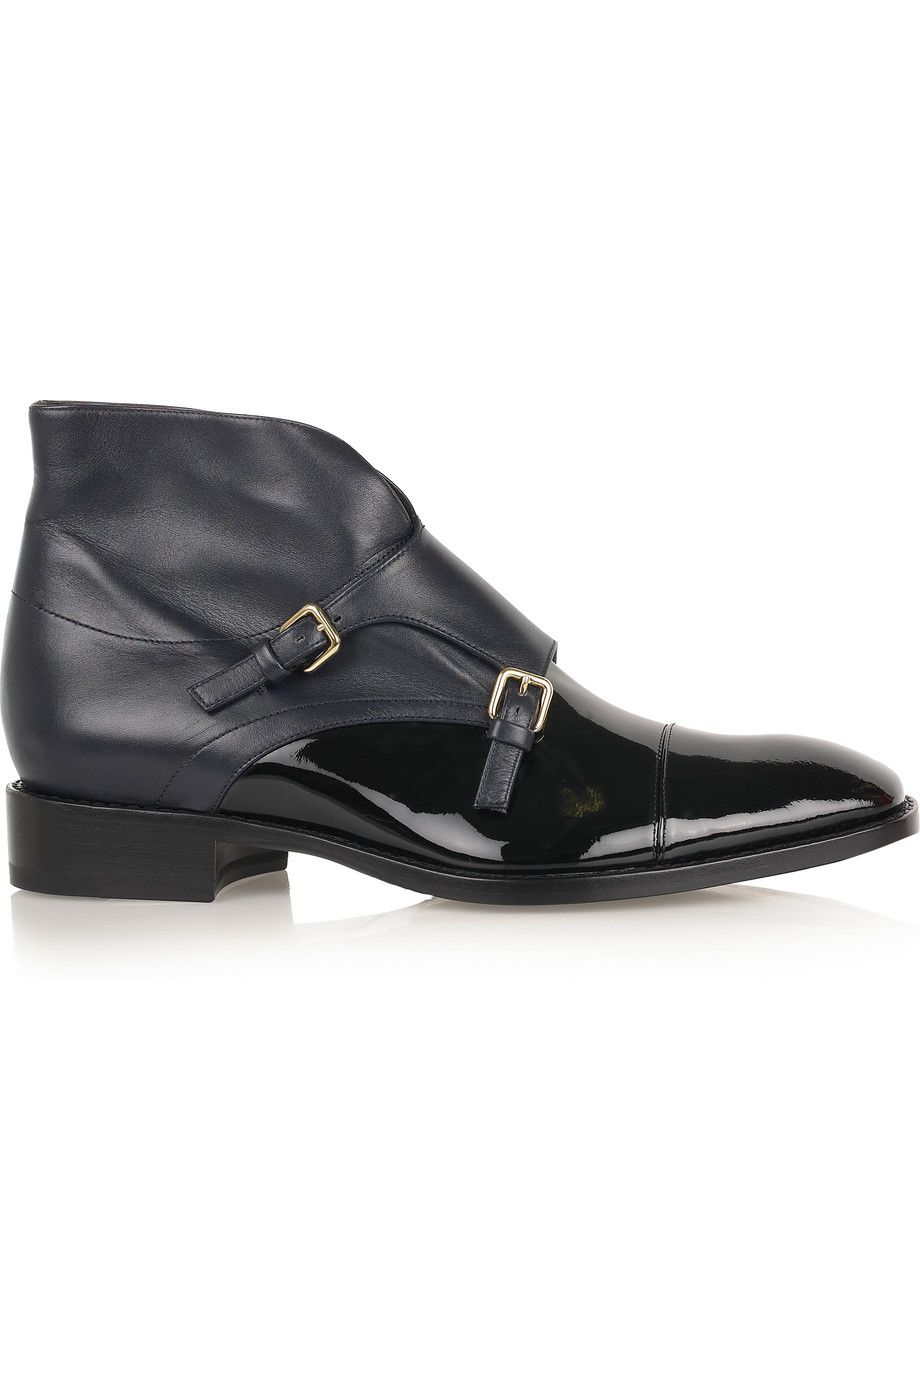 Midnight blue Leather monk strap ankle boots | Jil Sander